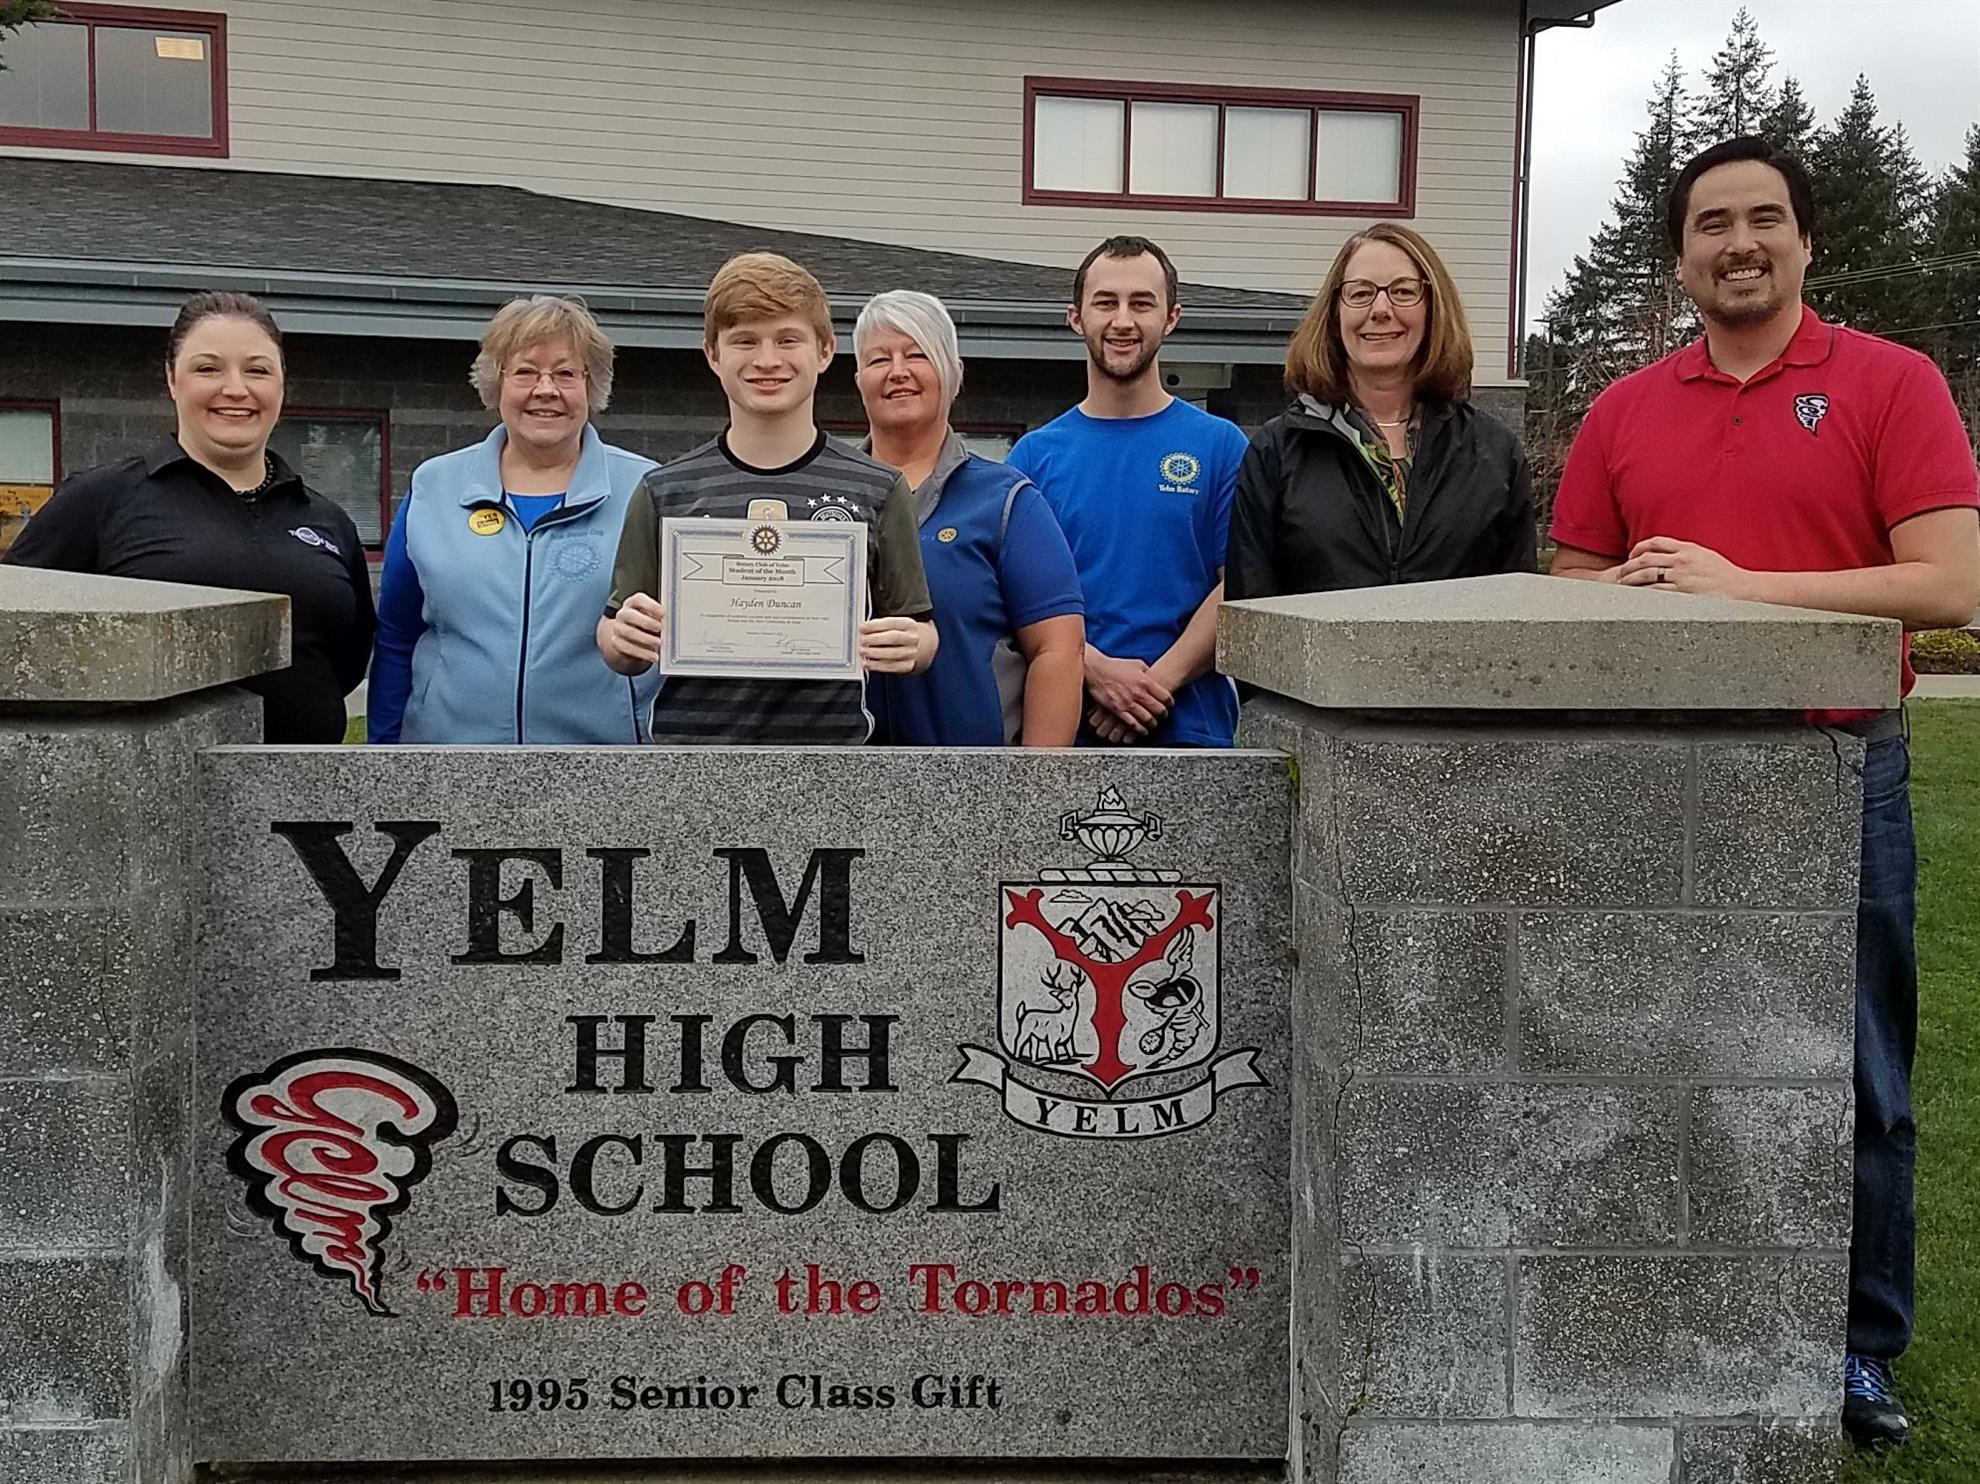 Stories | Rotary Club of Yelm